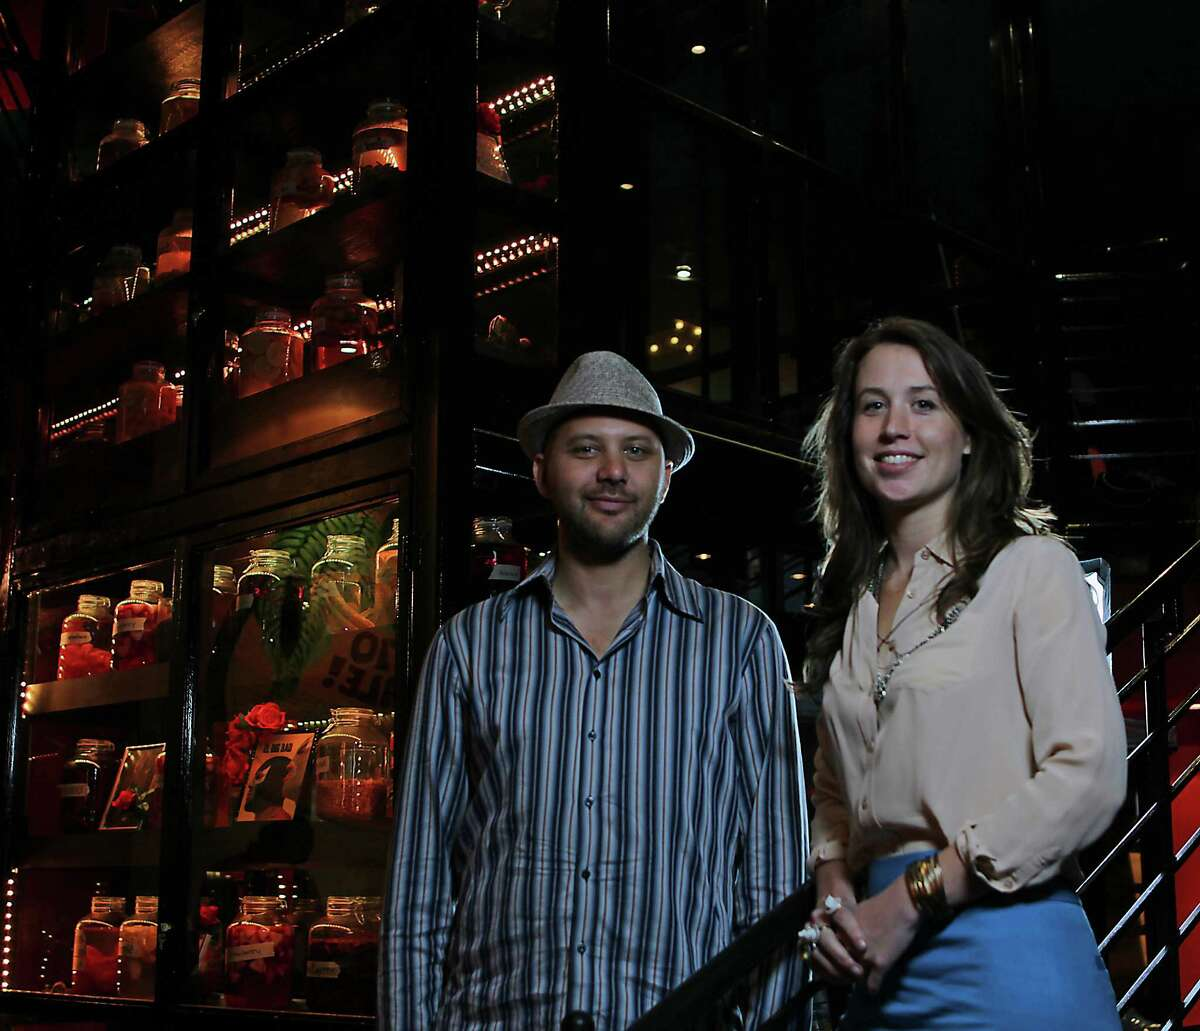 El Big Bad owners Steve Sharma and Lea McKinney stand in front of one of the restaurant's oddities - a cabinet of tequilas steeped in fruit and botanicals.